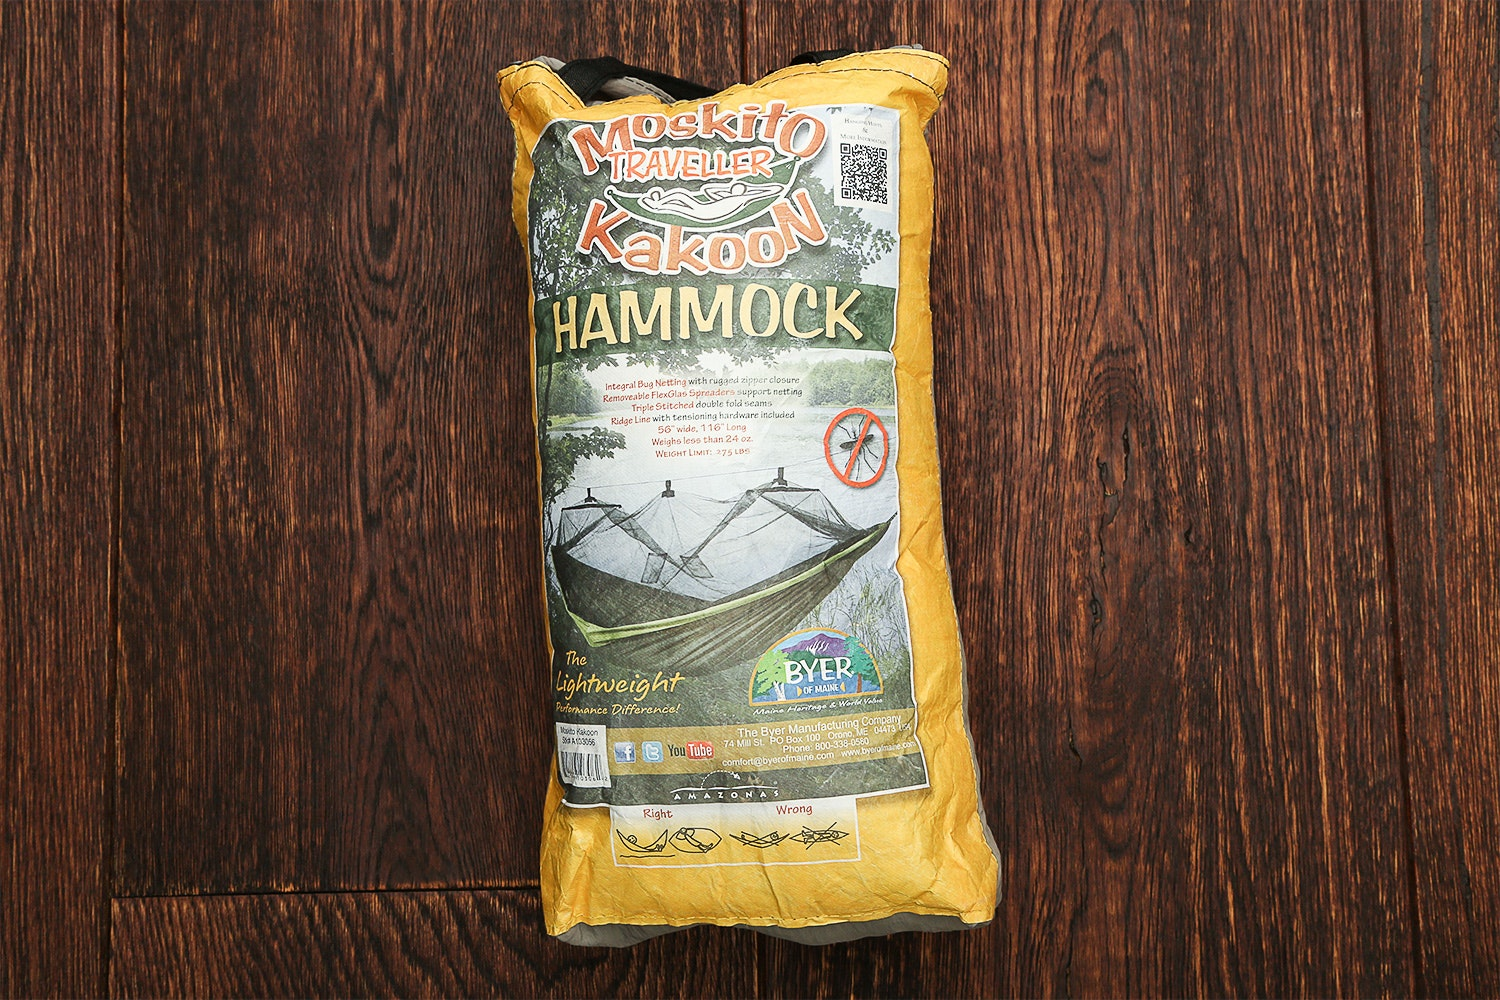 byer of maine moskito kakoon hammock byer of maine moskito kakoon hammock   price  u0026 reviews   massdrop  rh   massdrop